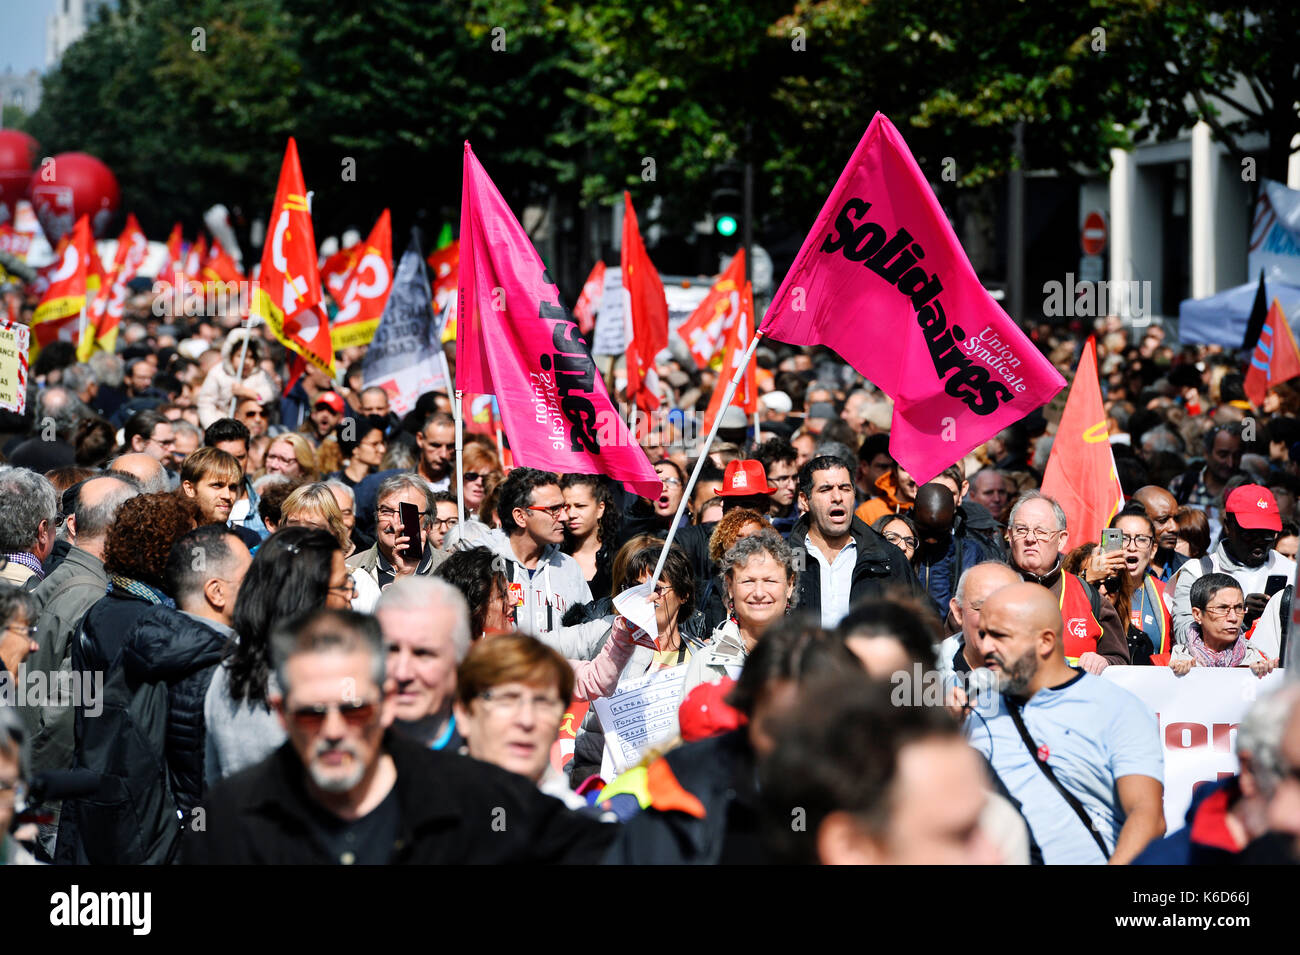 Paris, France. 12th Sep, 2017. Day of strike and protest against the labour Law reform with French unions, fairground workers and circus artists in first line Credit: Frédéric VIELCANET/Alamy Live News - Stock Image